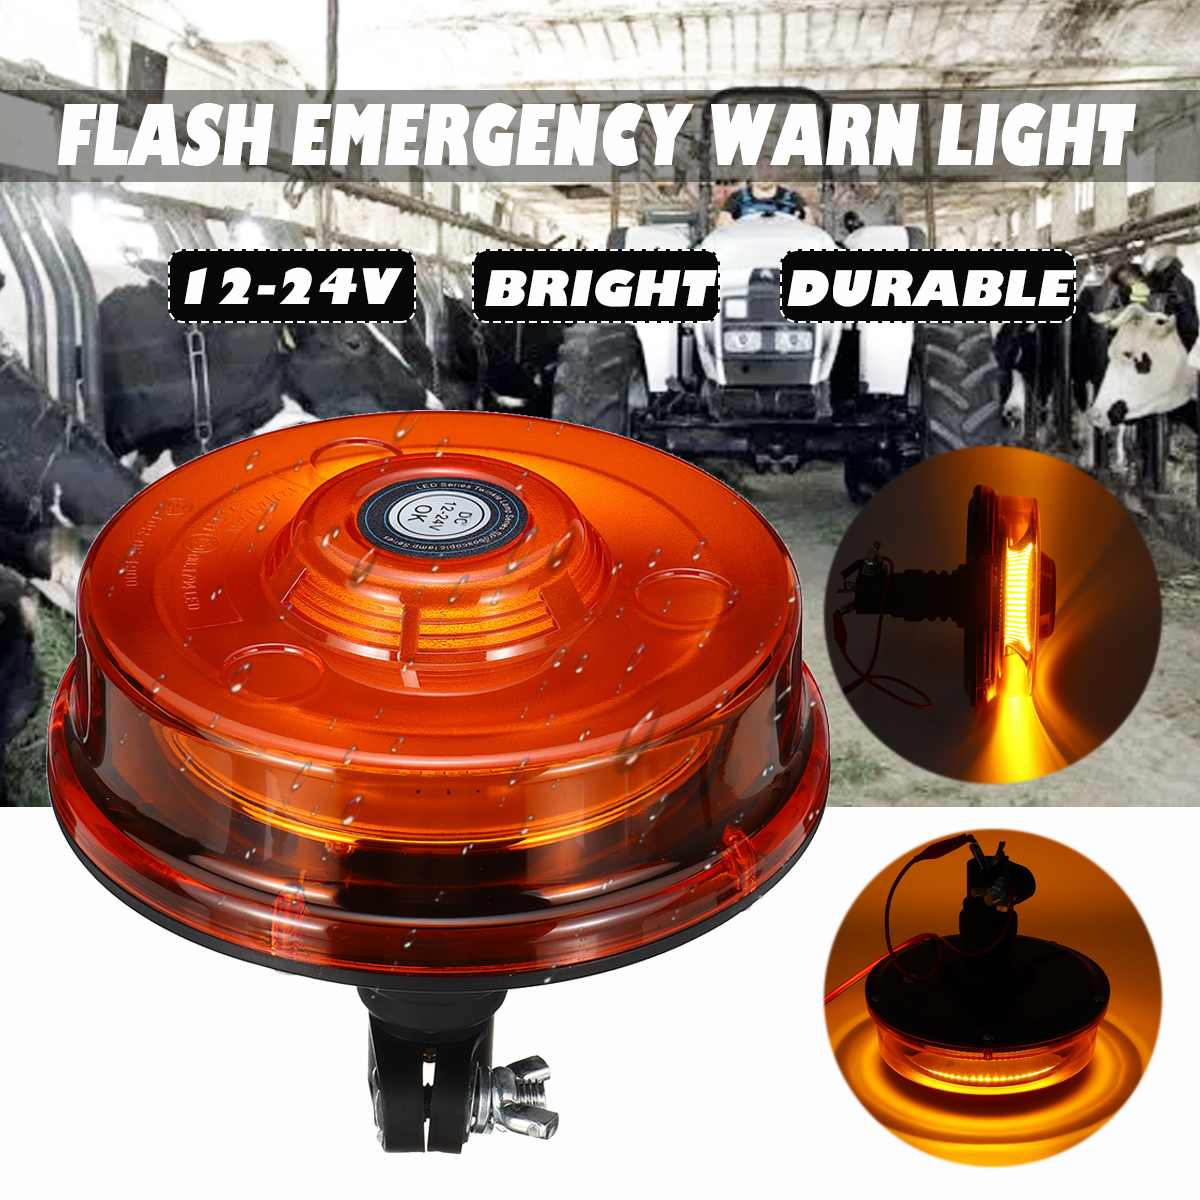 24W 12-24V Car Truck Strobe Warning Signal Light 72 LED Flashing Emergency Lights Beacon Lamp For Agricultural Vehicle Tractor